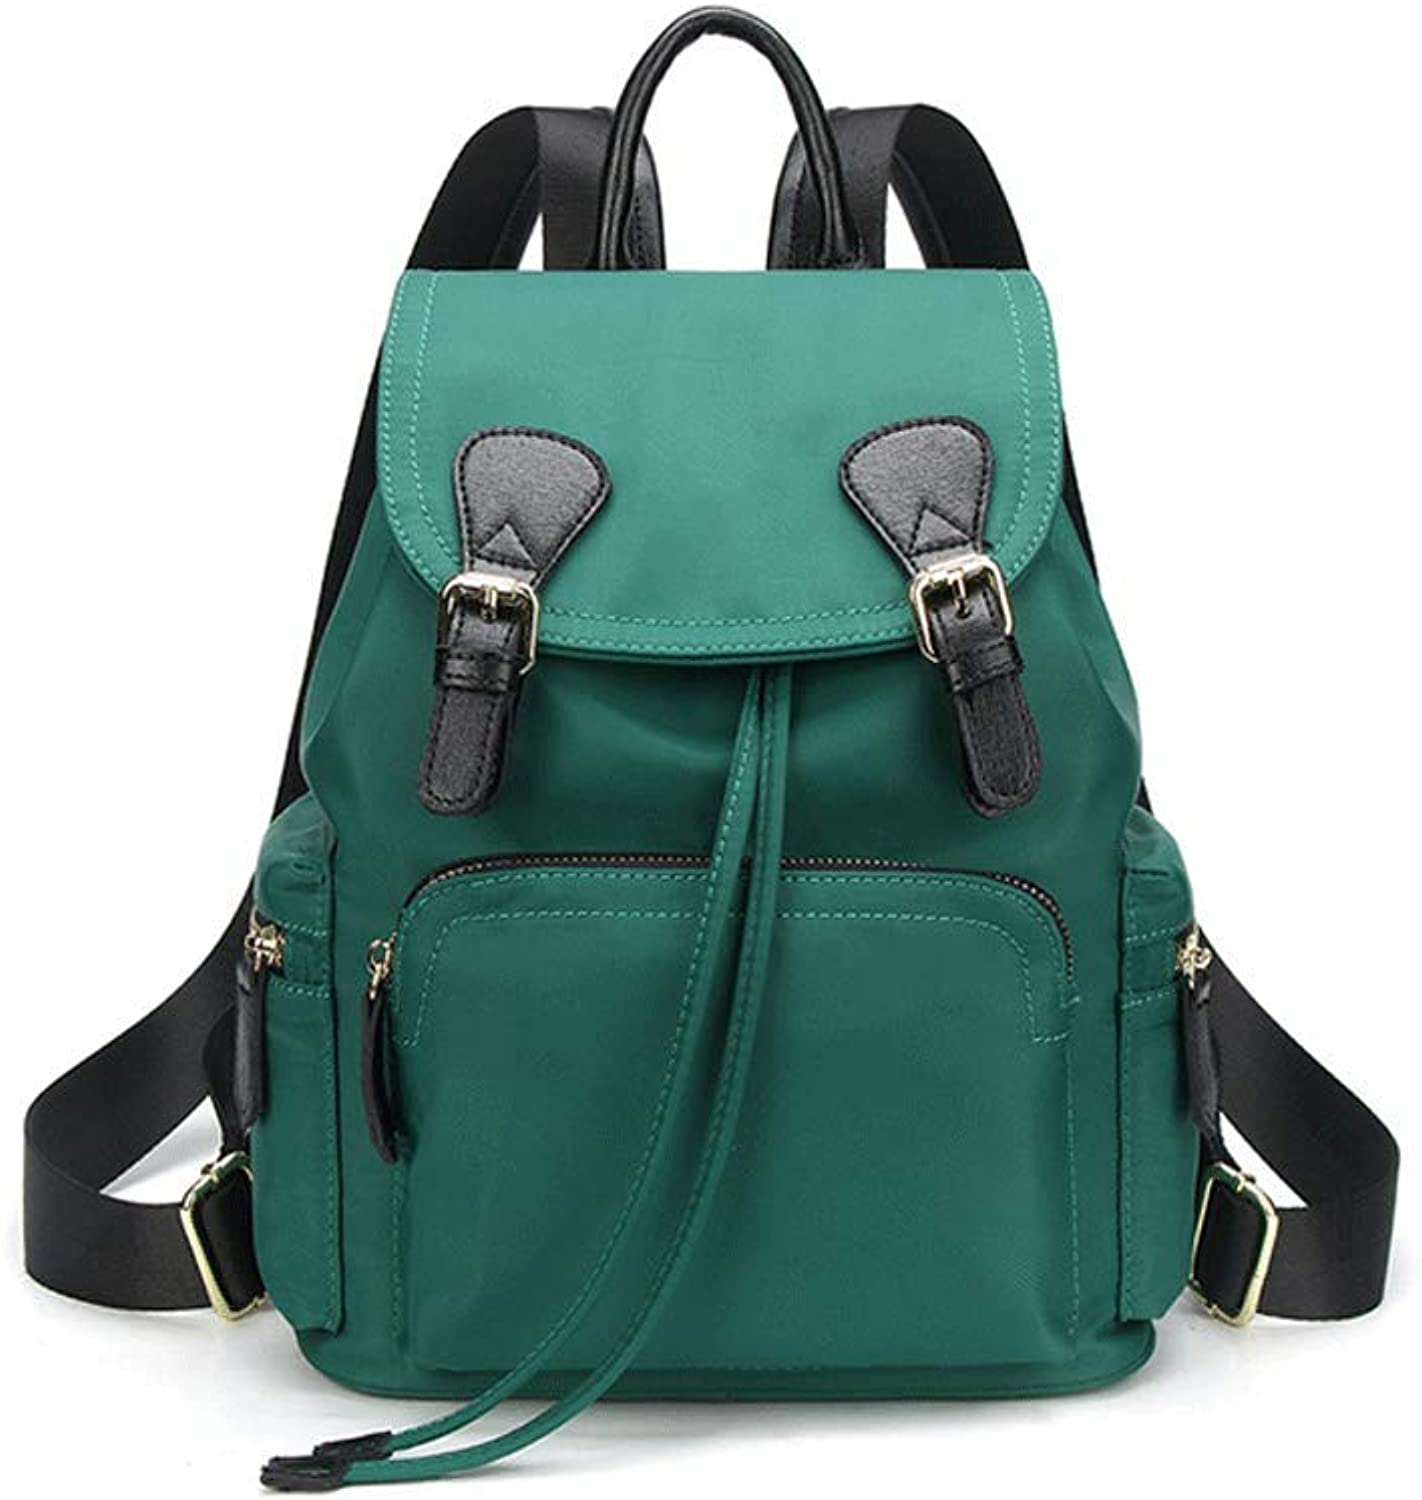 HUWAI Backpack Shoulders Unisex Female Retro Campus Personality Computer Bag (color   GREEN)